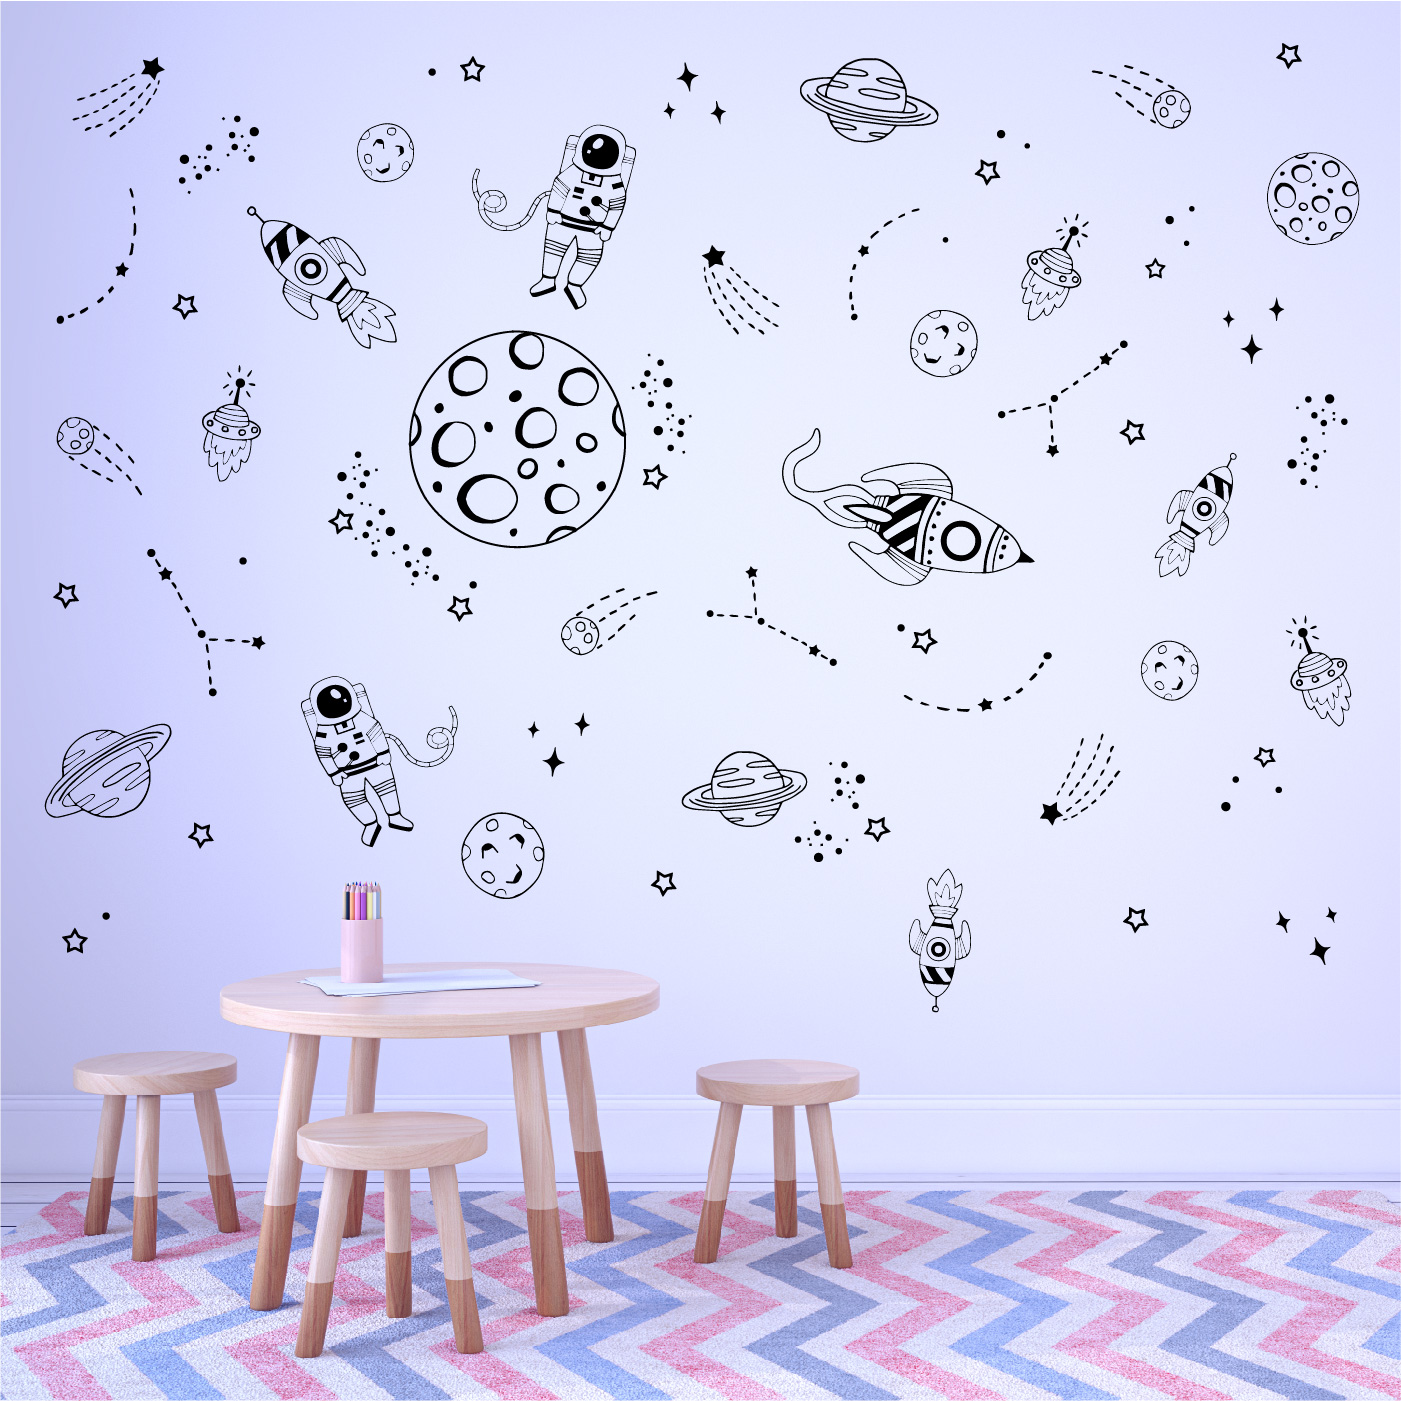 Wall stickers - Space